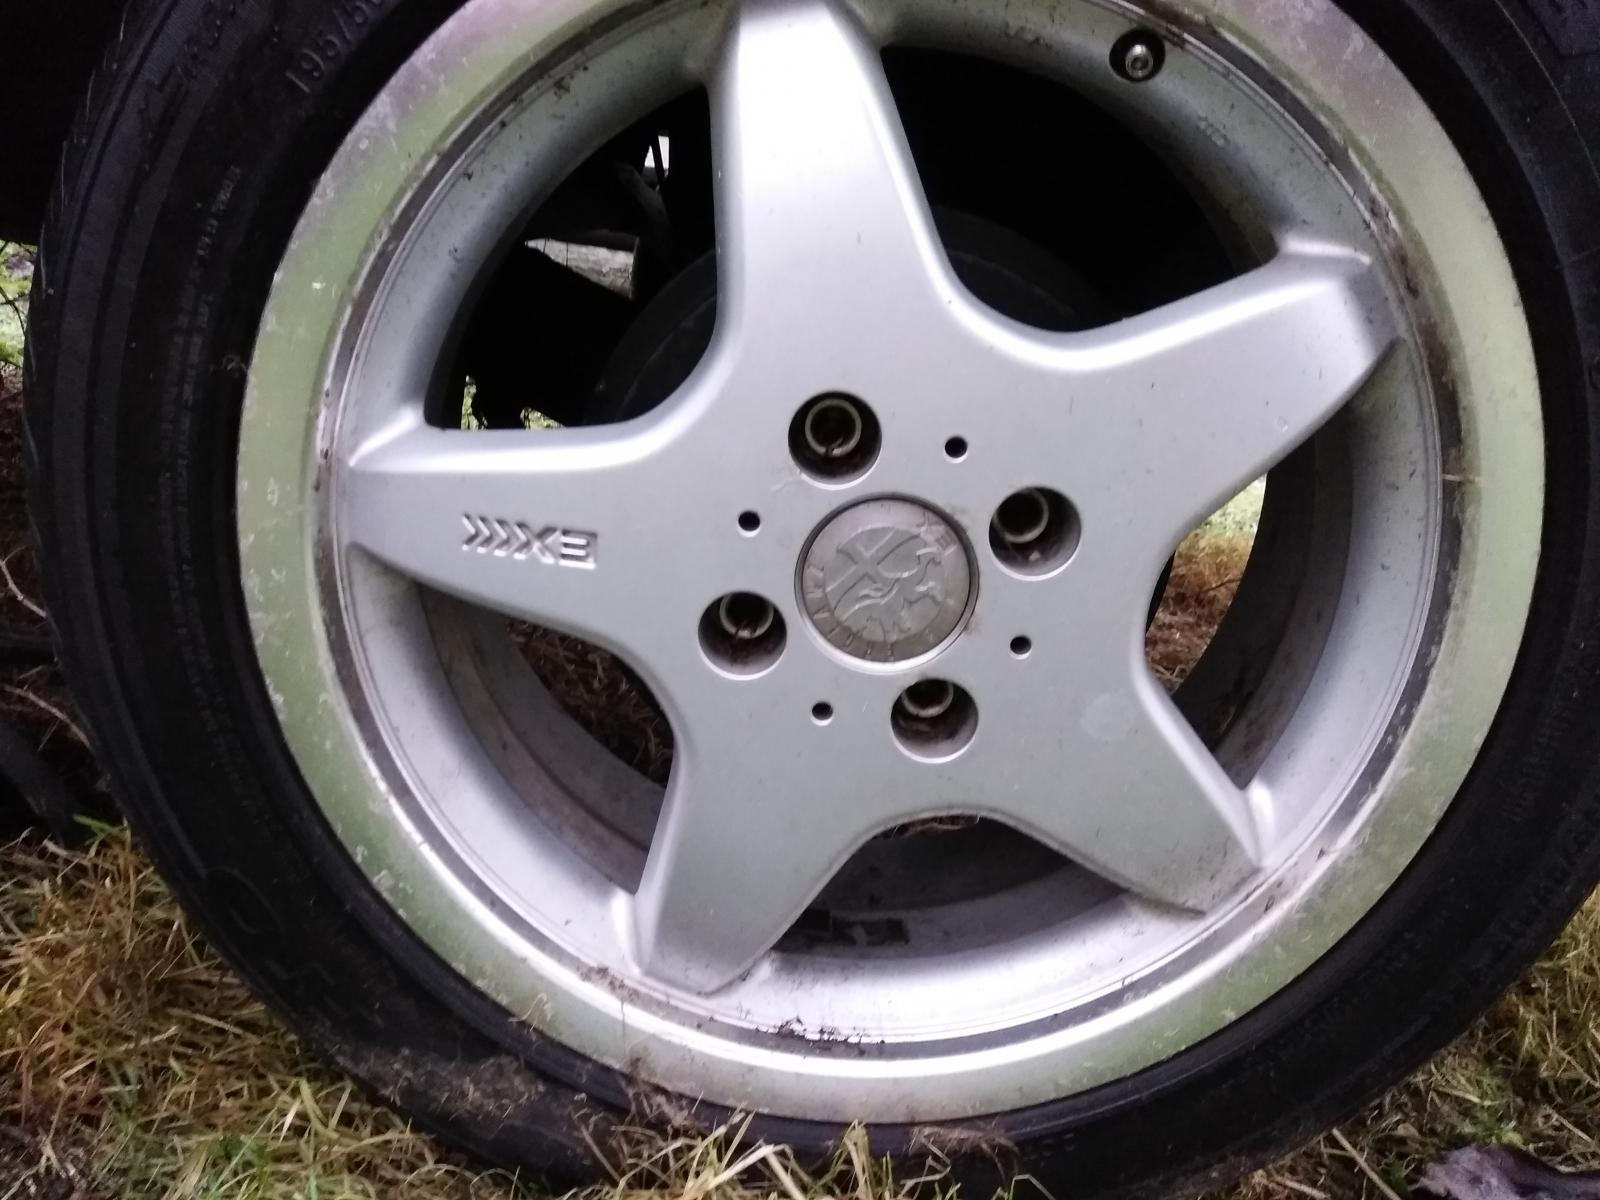 Can anyone I'd these wheels?